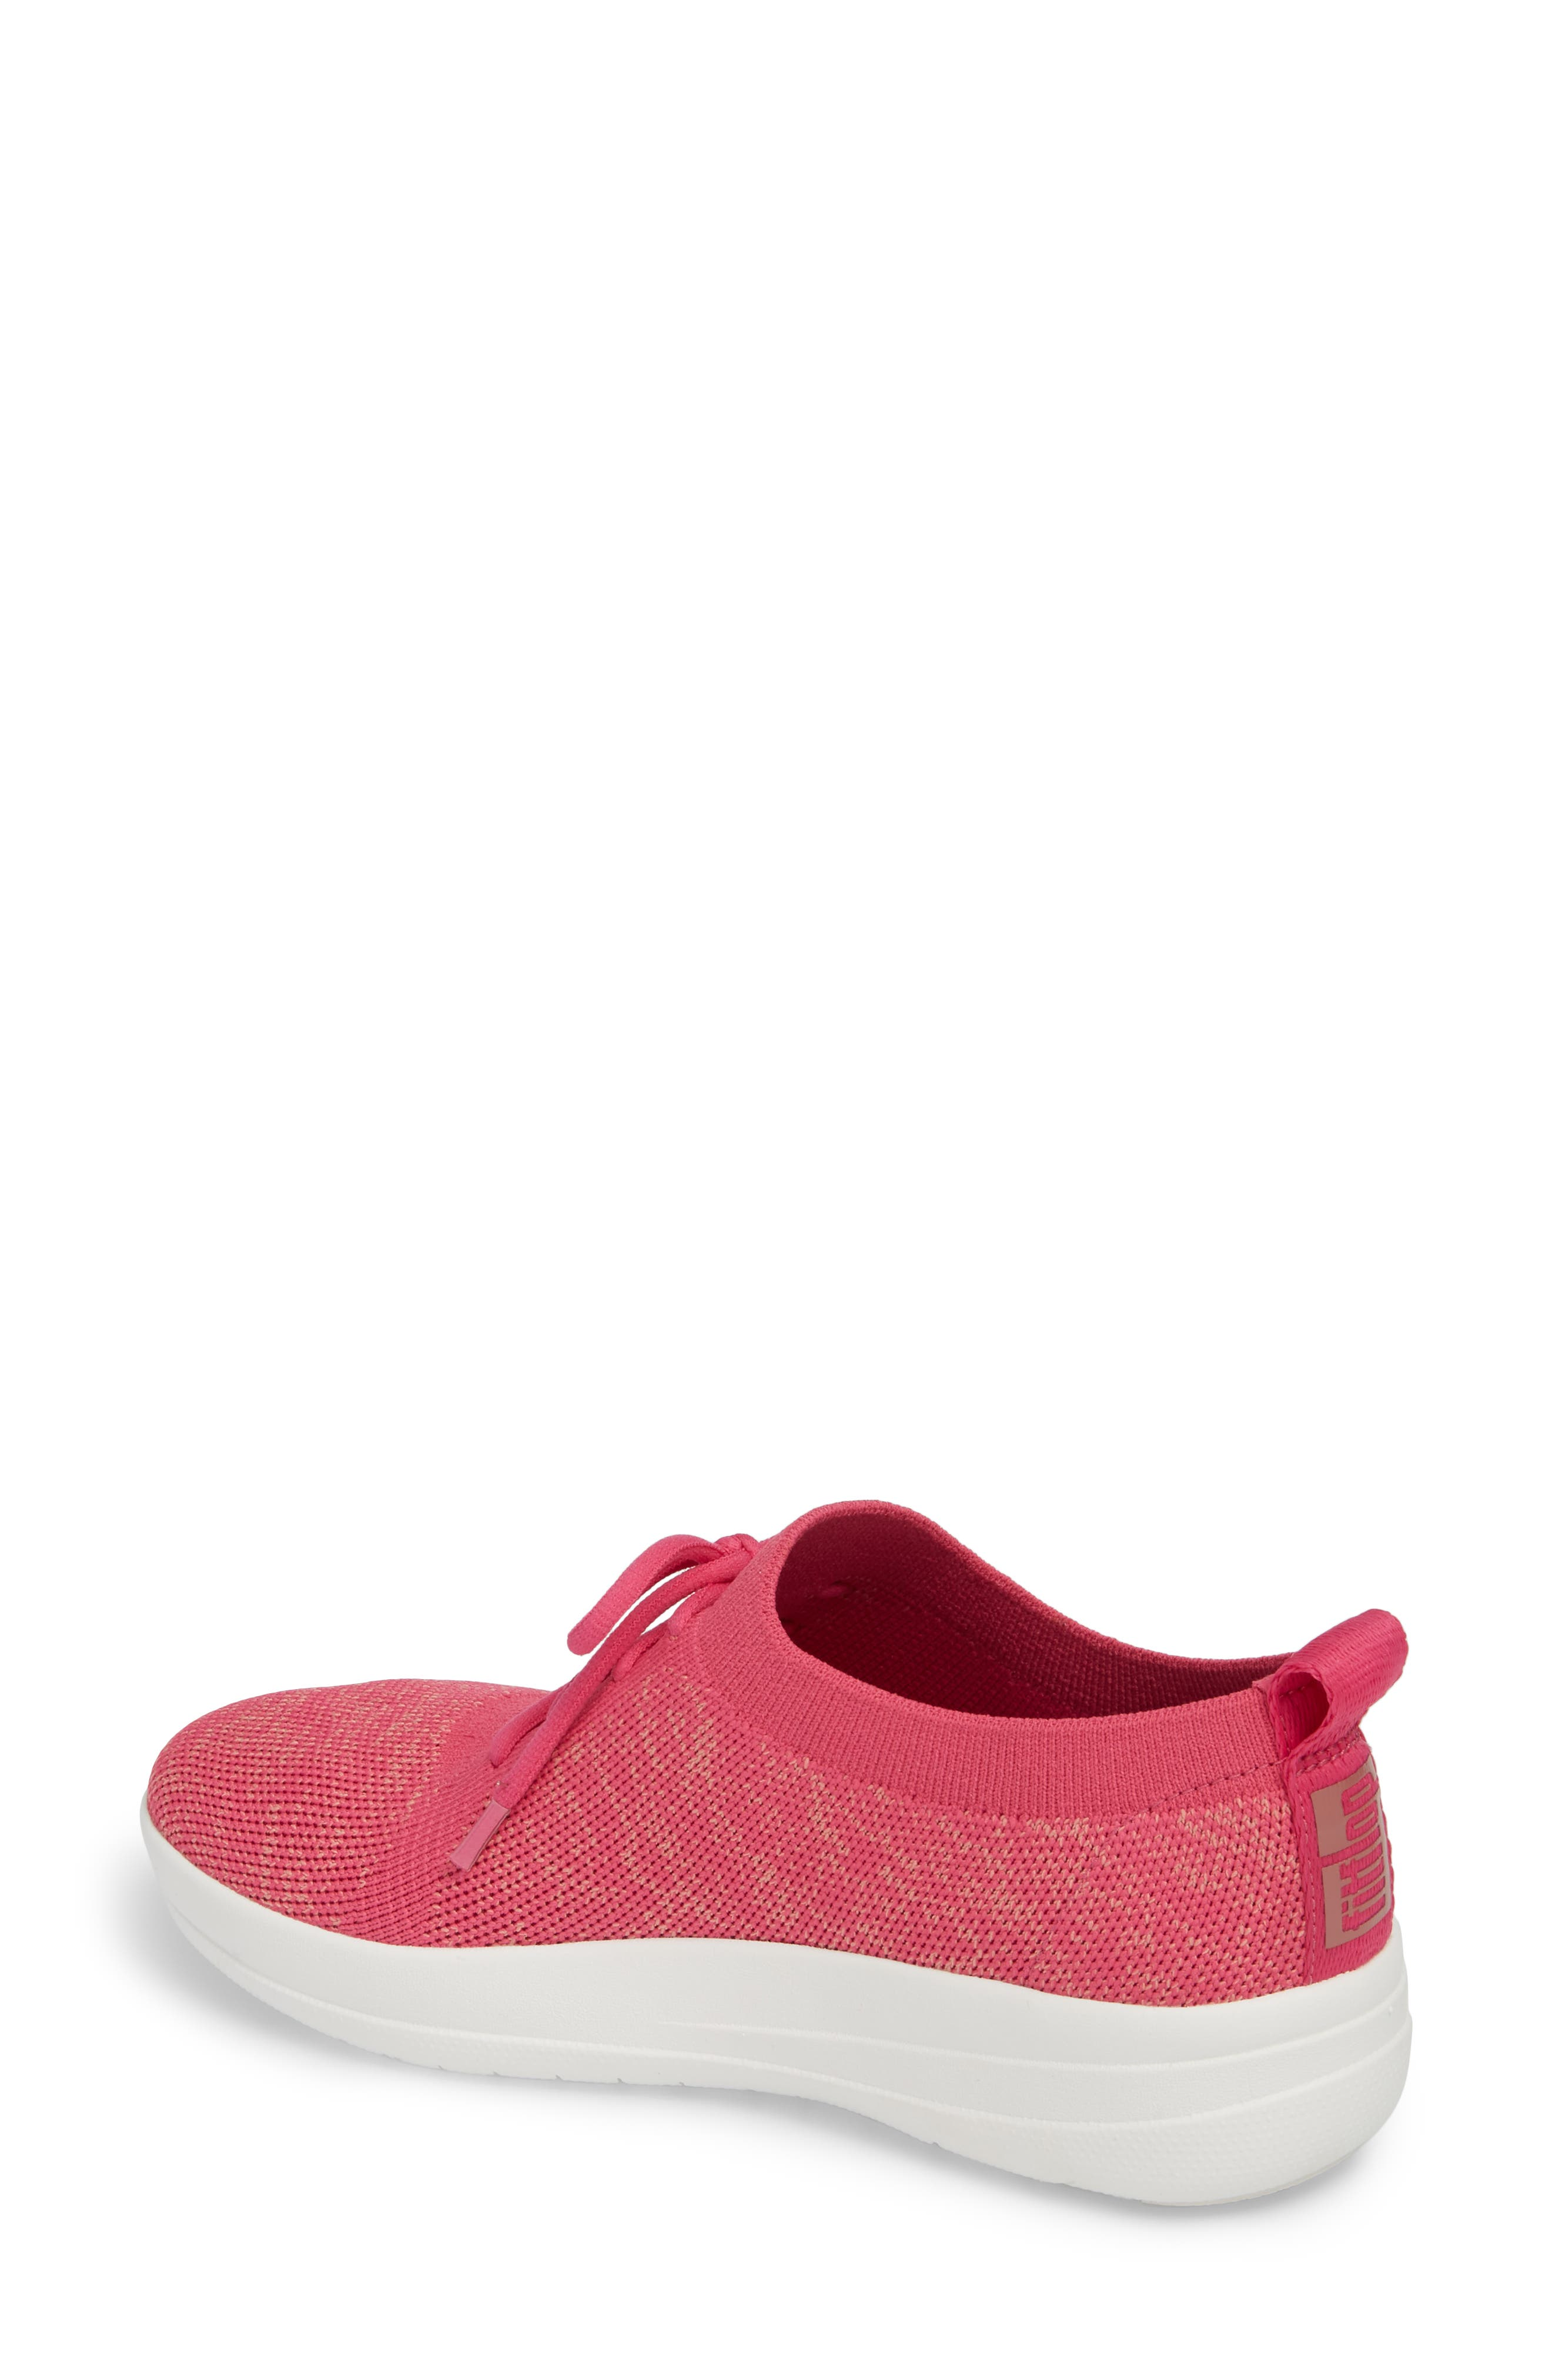 F-Sporty Uberknit<sup>™</sup> Sneaker,                             Alternate thumbnail 2, color,                             FUCHSIA/ DUSTY PINK